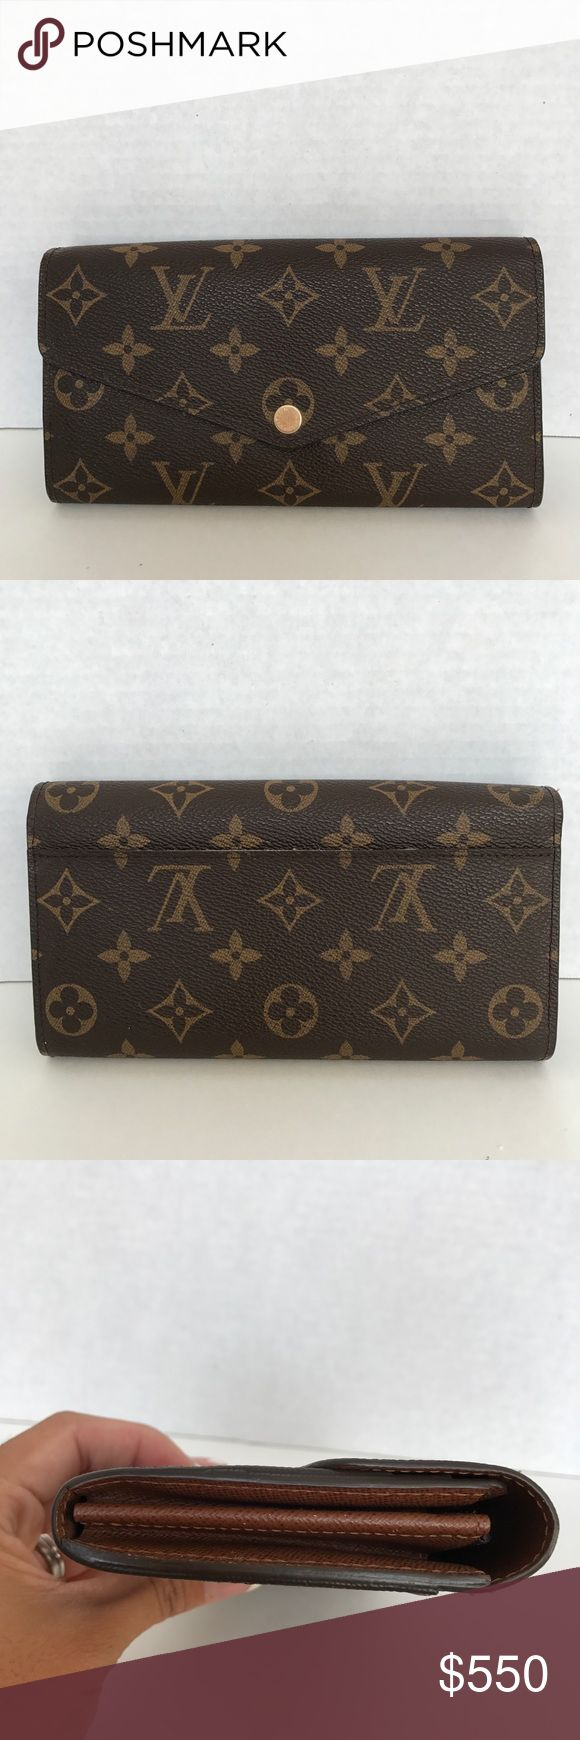 Authentic Louis Vuitton Sarah PF Mono Authentic Louis vuitton Sarah PF monogram in excellent condition. No cracked, no tear, no rip. Slight scratches on the hardware. It doesn't come with dustbag, box nor receipt.  Code: TN4114  7.5 x 3.9 inches  (Length x Height)   - 16 credit card slots, two large compartments for banknotes, zippered coin pocket, two flat interior pockets, one exterior back pocket - Calf leather lining - Golden color metallic pieces Louis Vuitton Bags Wallets